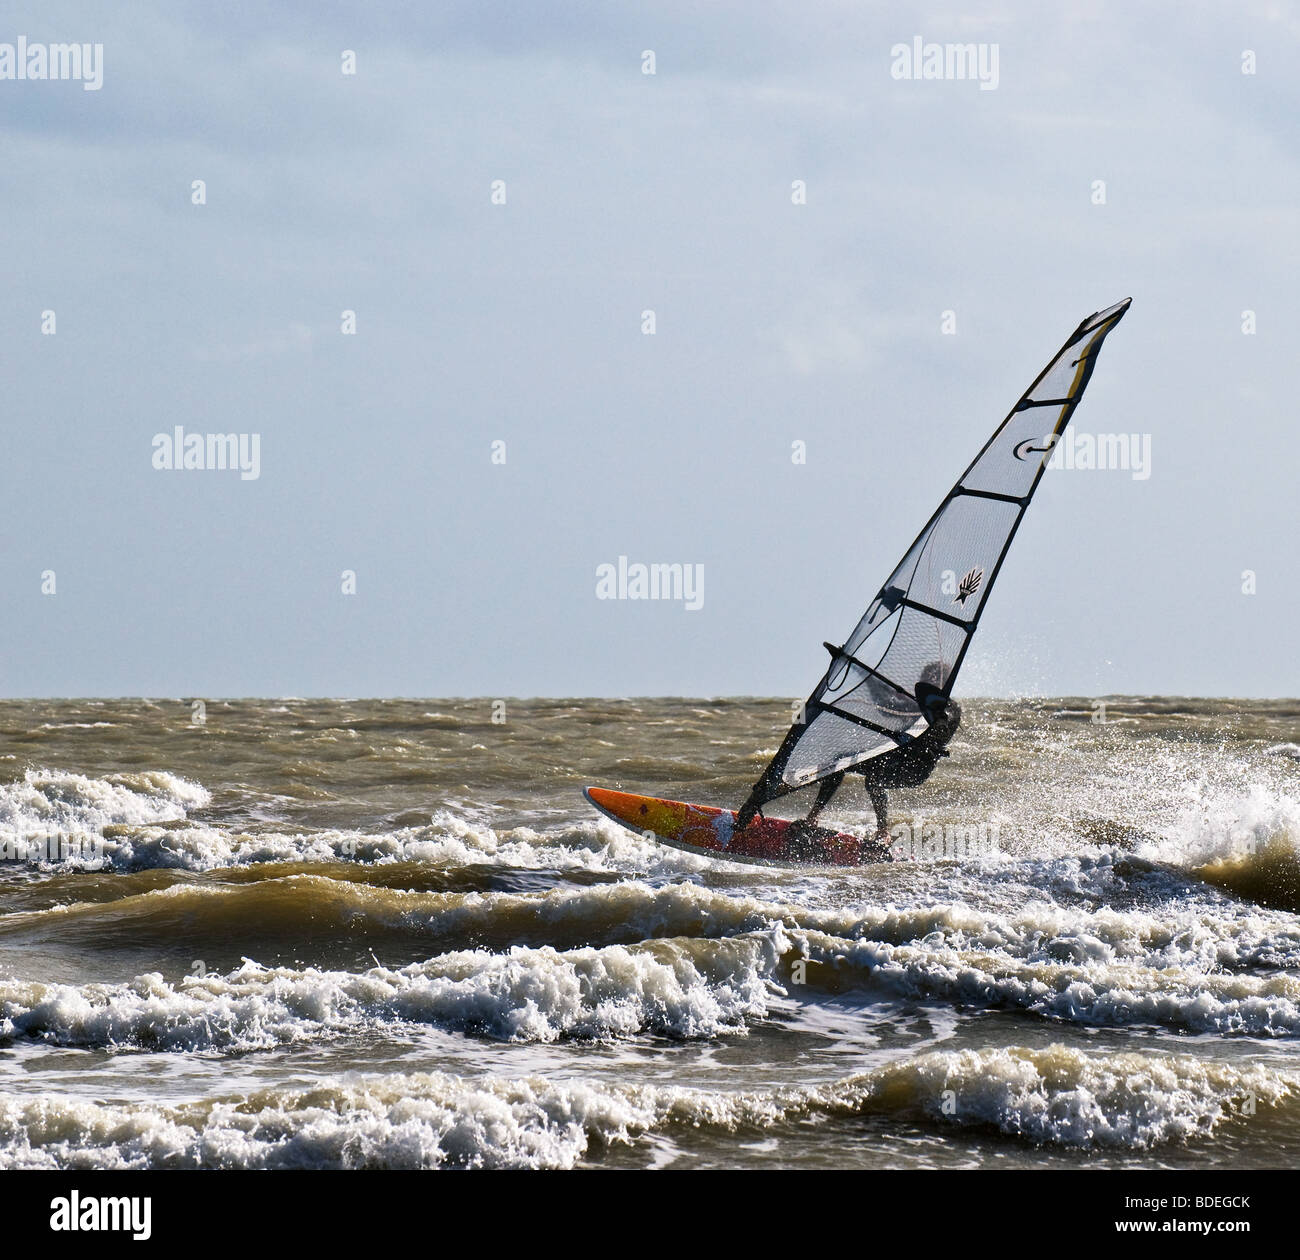 A windsurfer in the sea off Camber Sands in Sussex.  Photo by Gordon Scammell - Stock Image